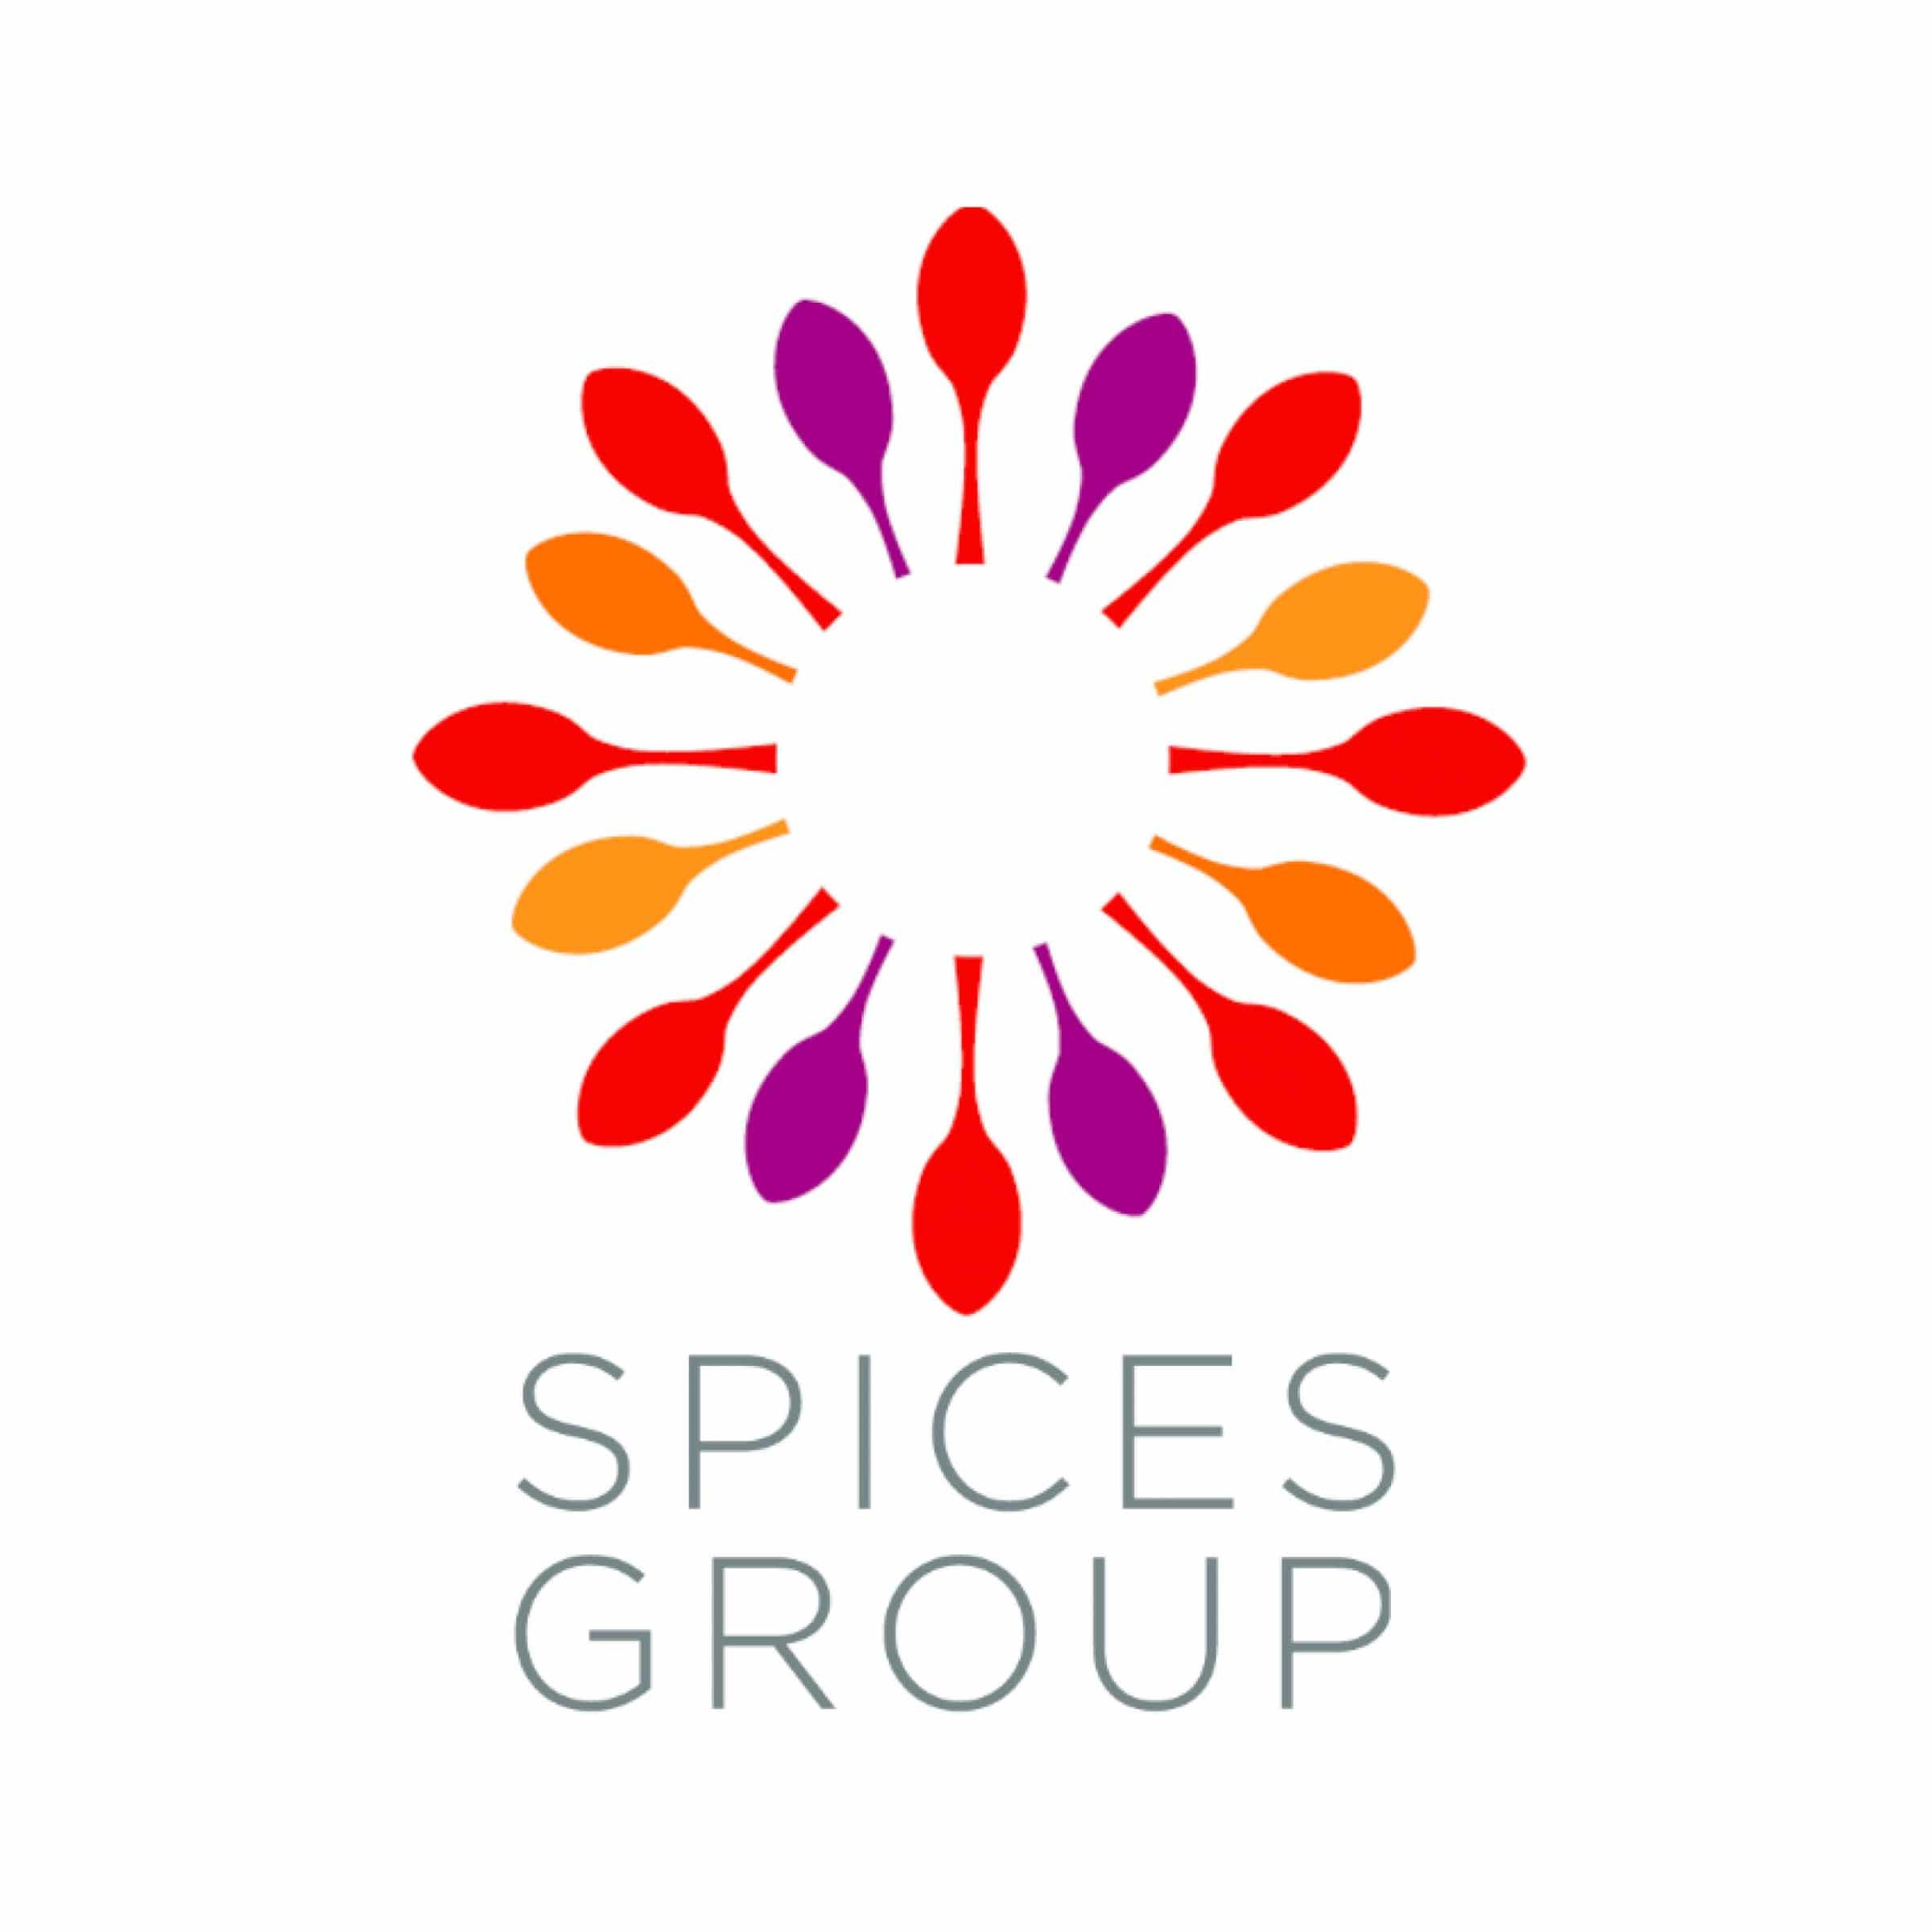 swan river sailing supporter spices group logo